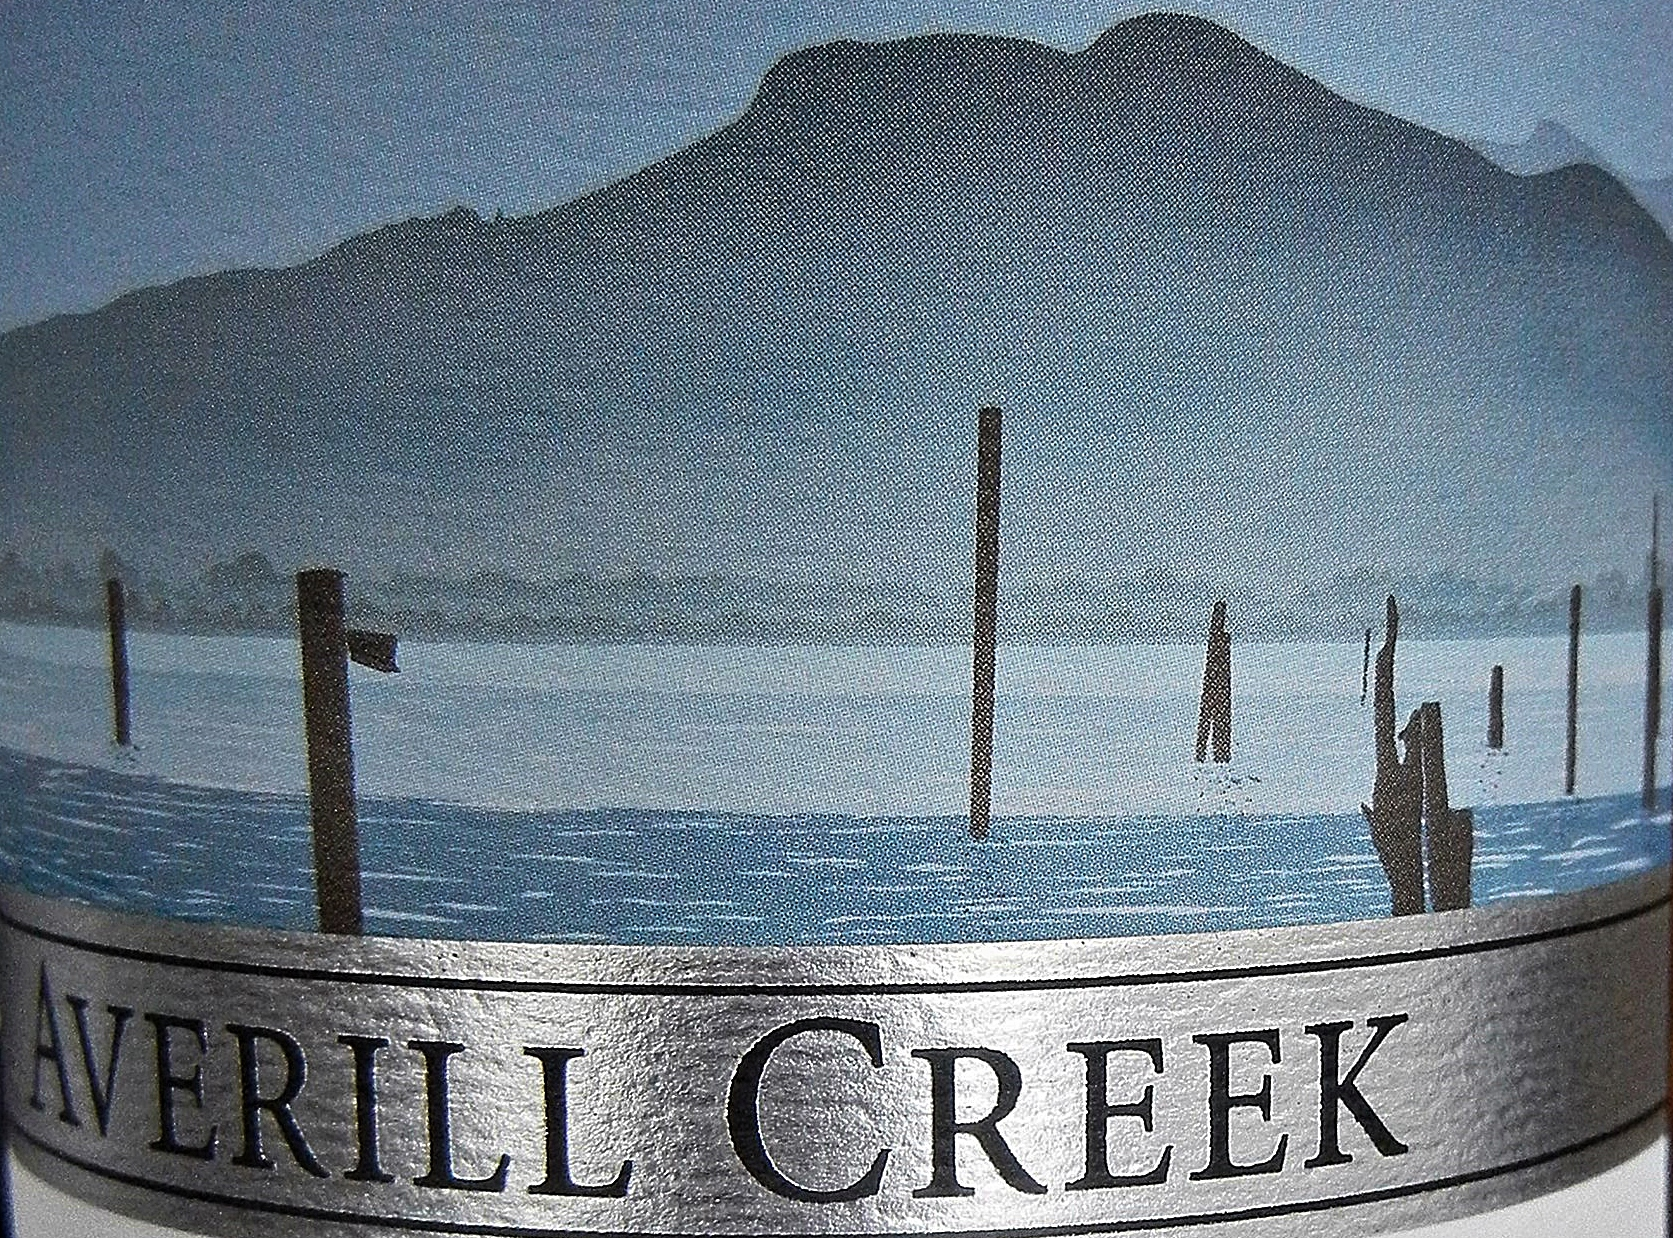 BC Pinot Noir Averill Creek label detail